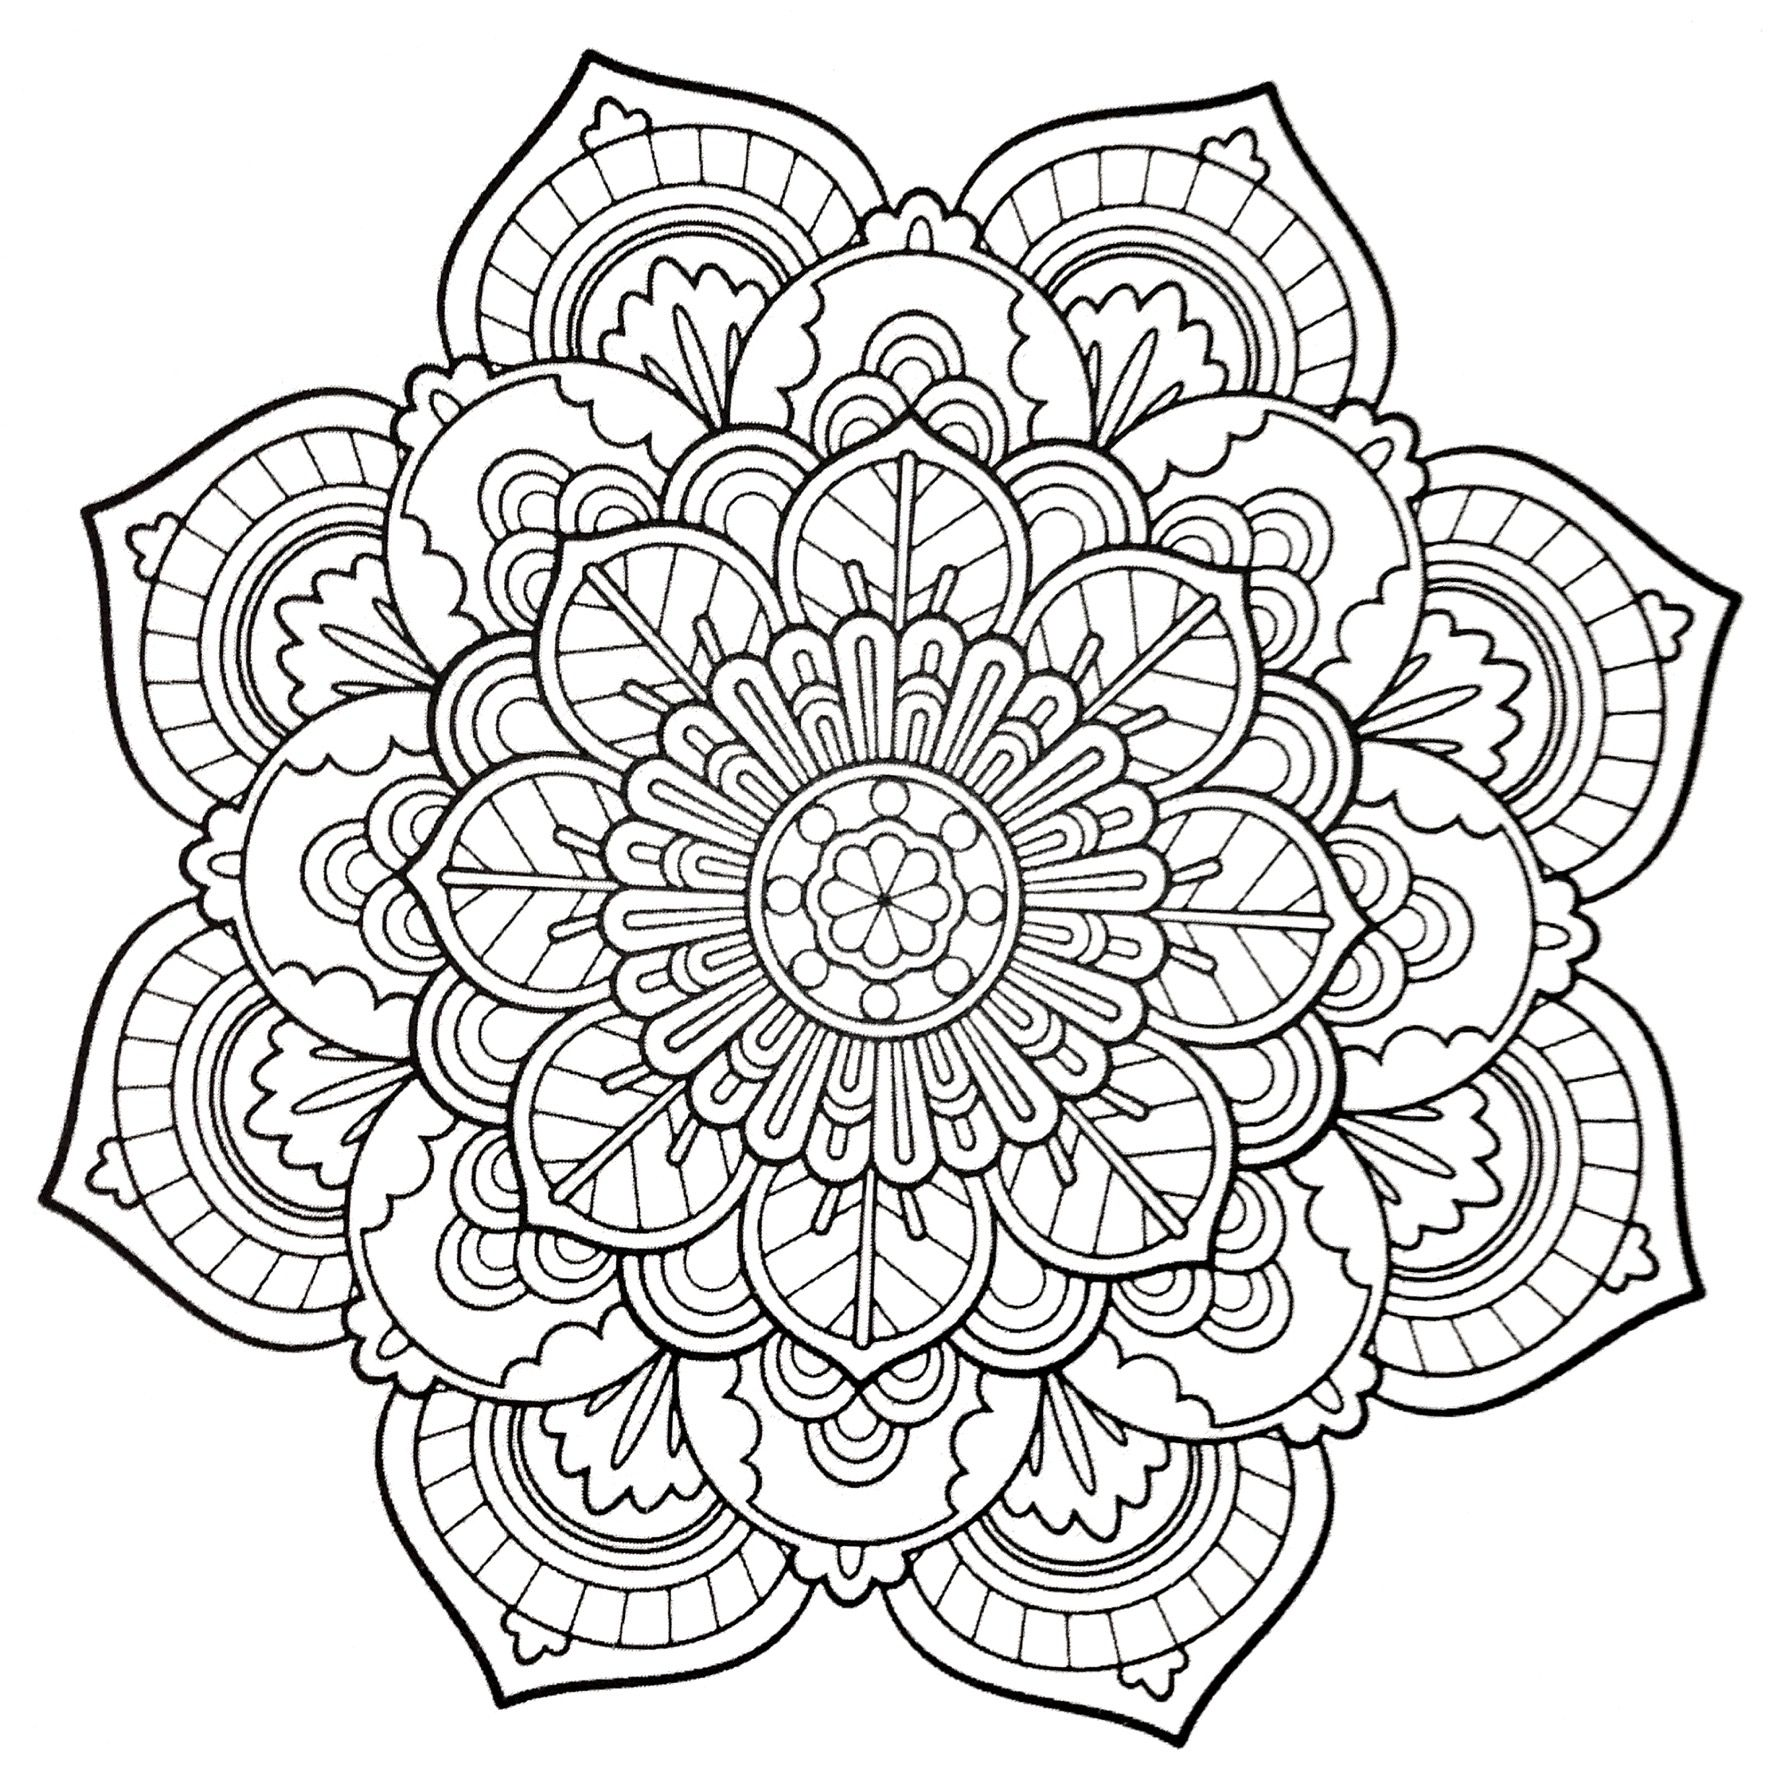 Pin By Michelle Schmidt On Coloring Pages